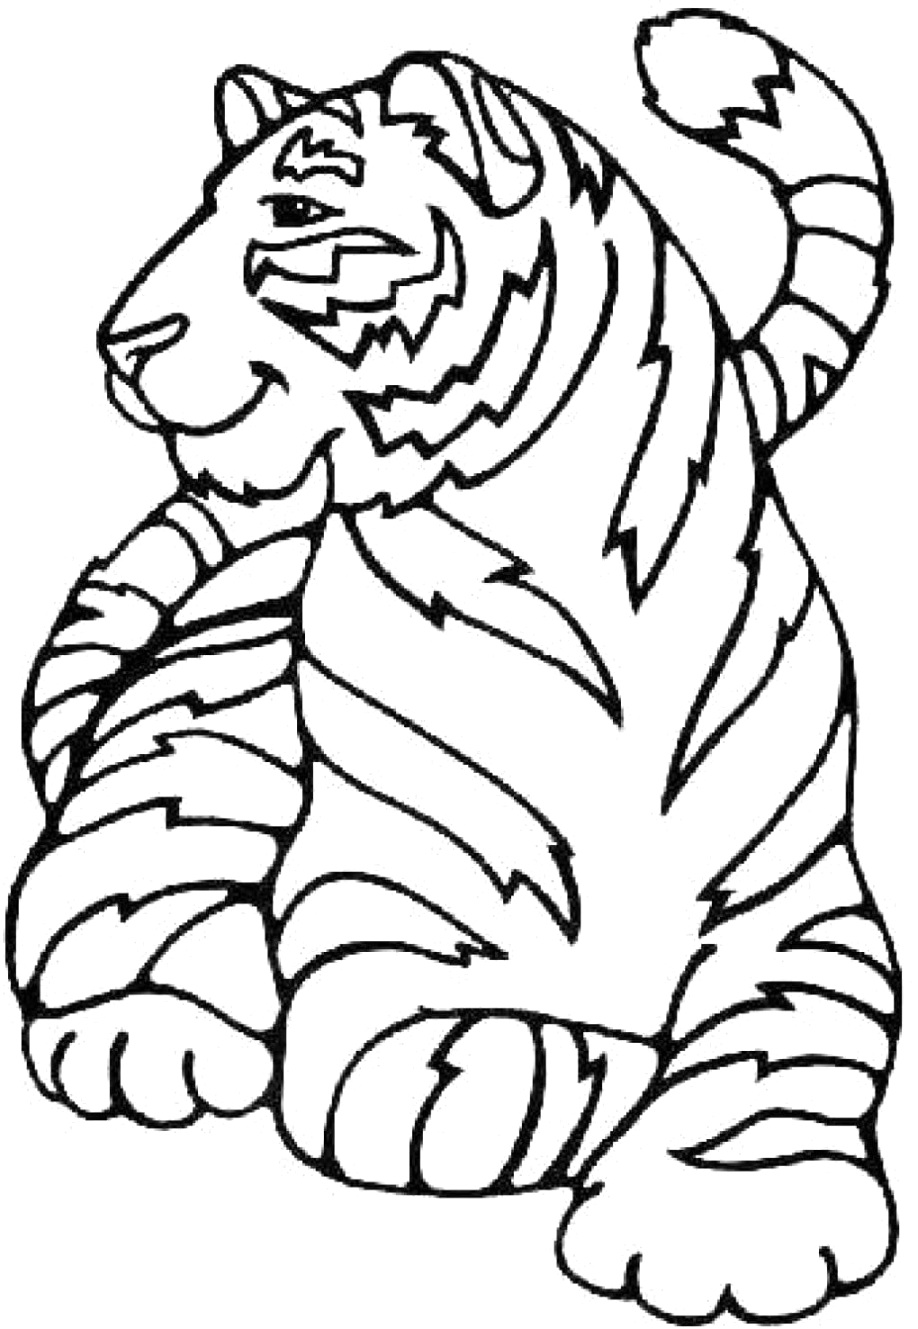 collection of animal coloring pages Coloring Pages Archives